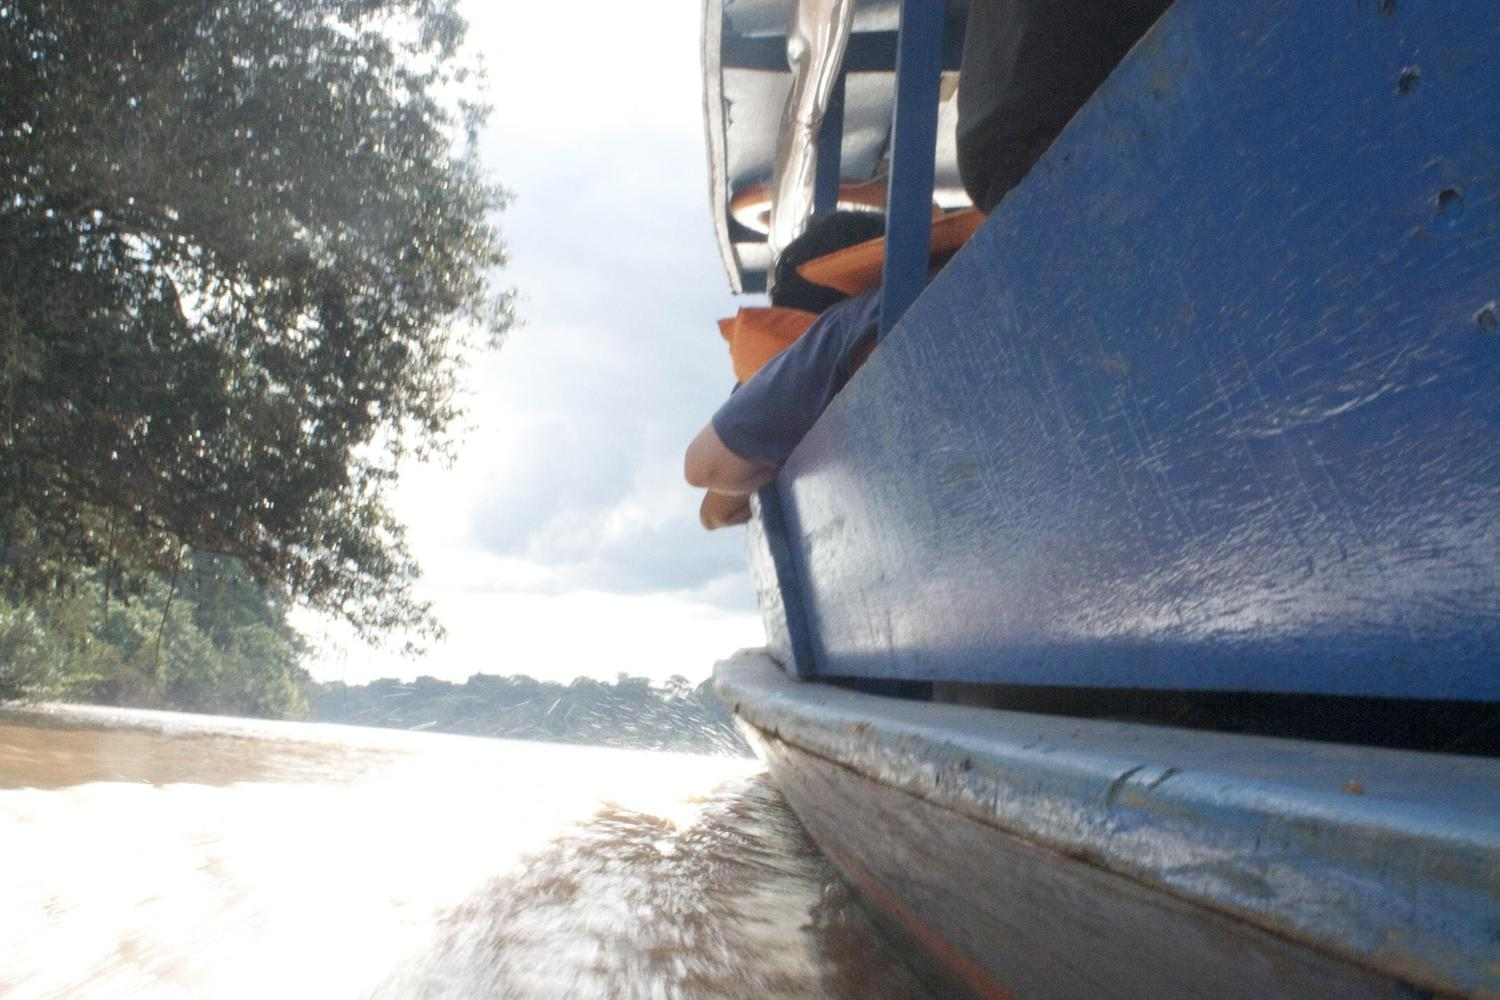 Travelling along the Tambopata River in the Peruvian Amazon